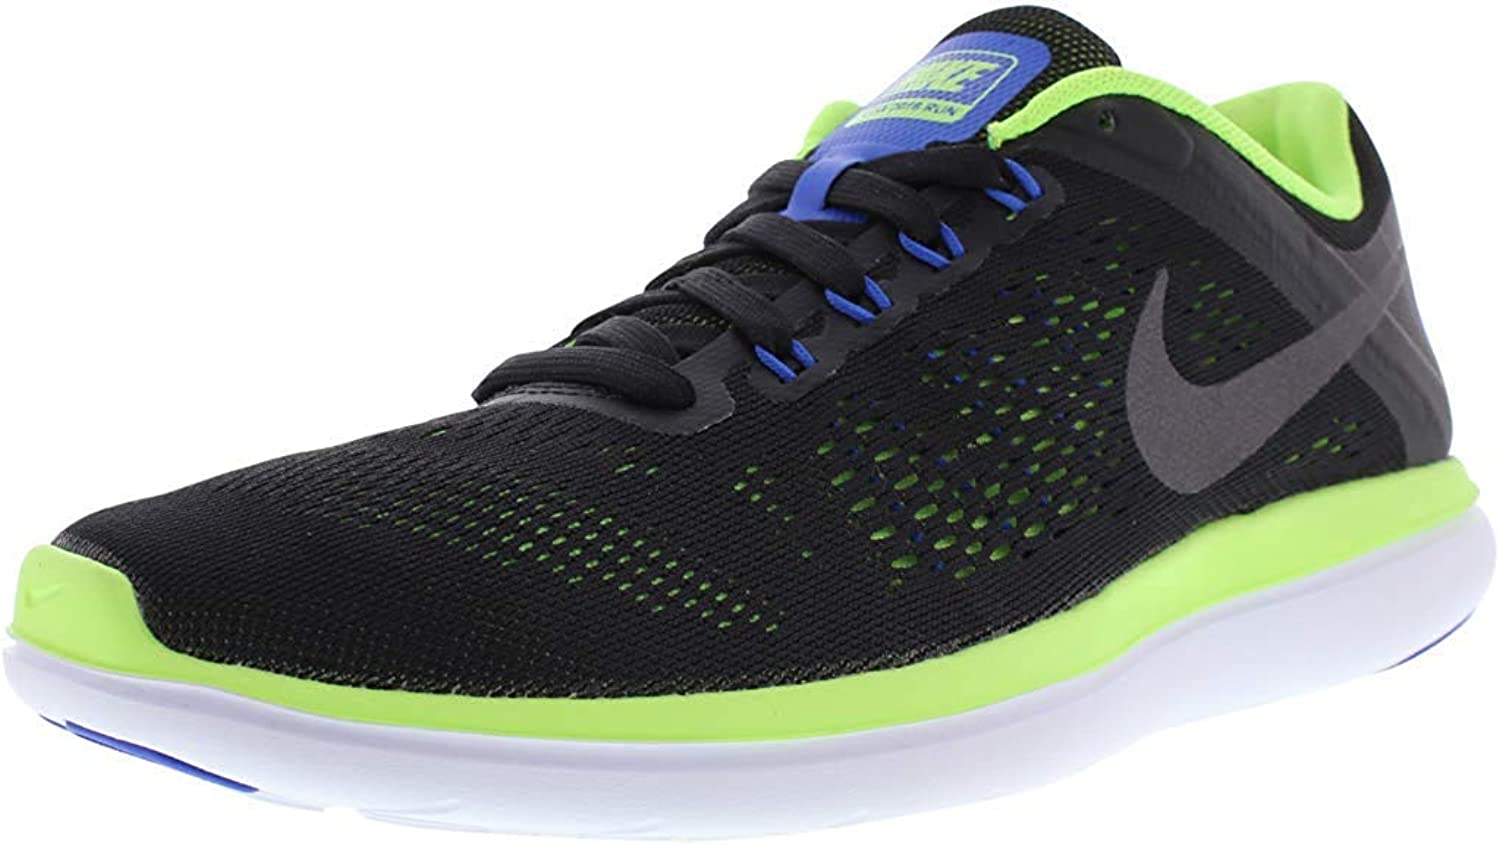 Nike Men's's 830369-009 Trail Running shoes